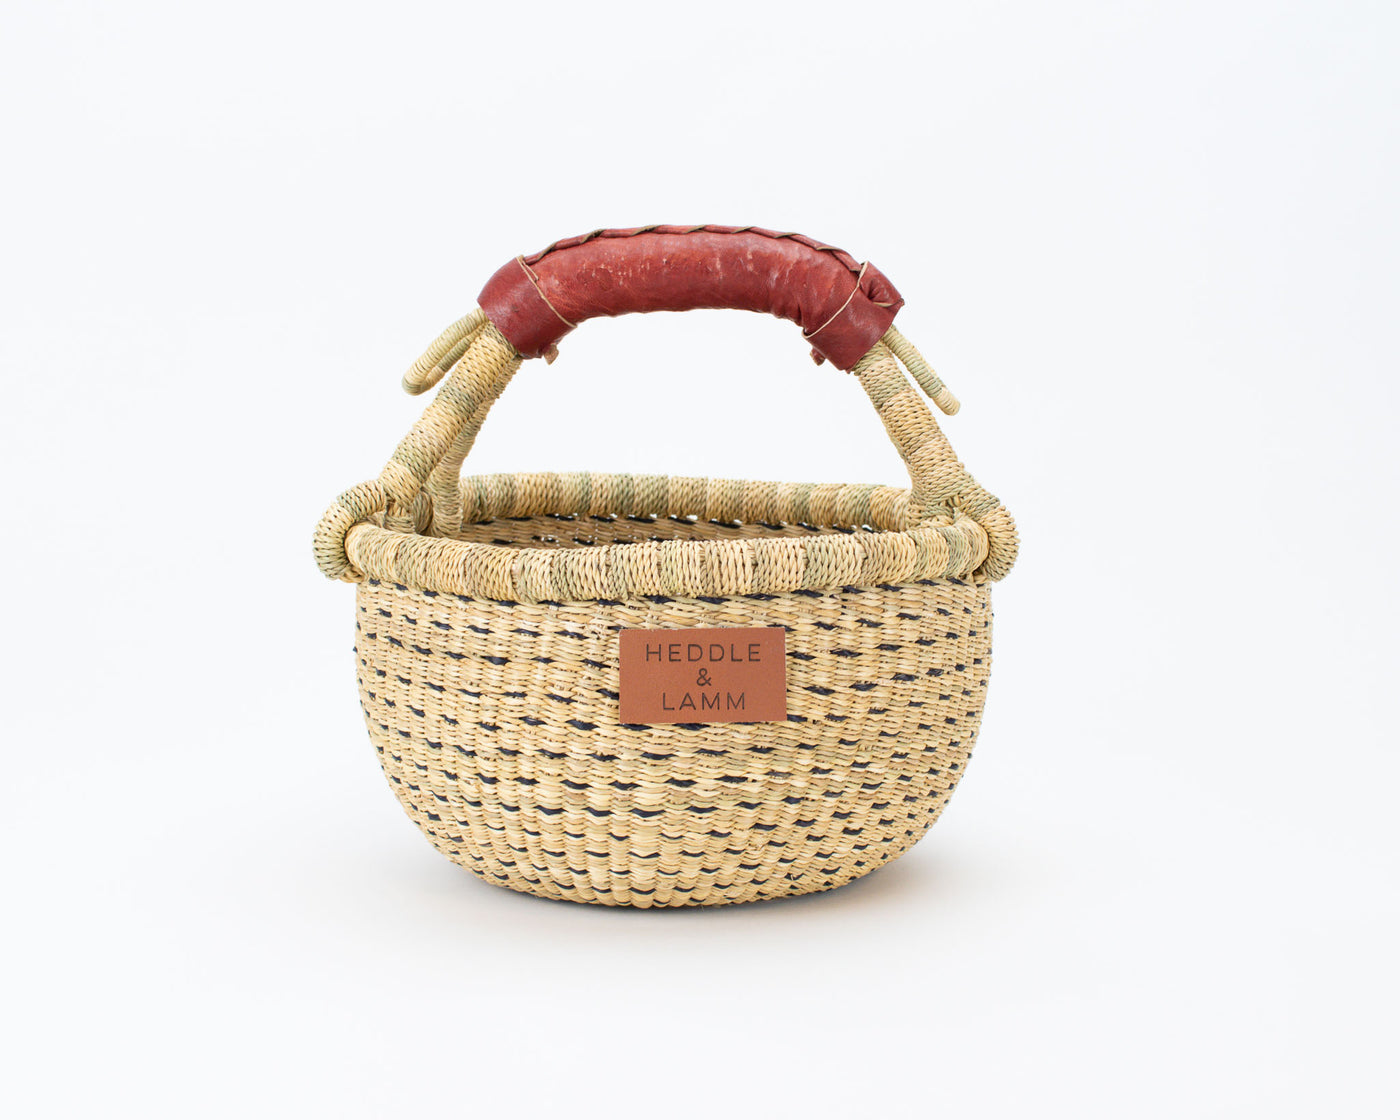 Ufa Mini Bolga Basket - Heddle & Lamm